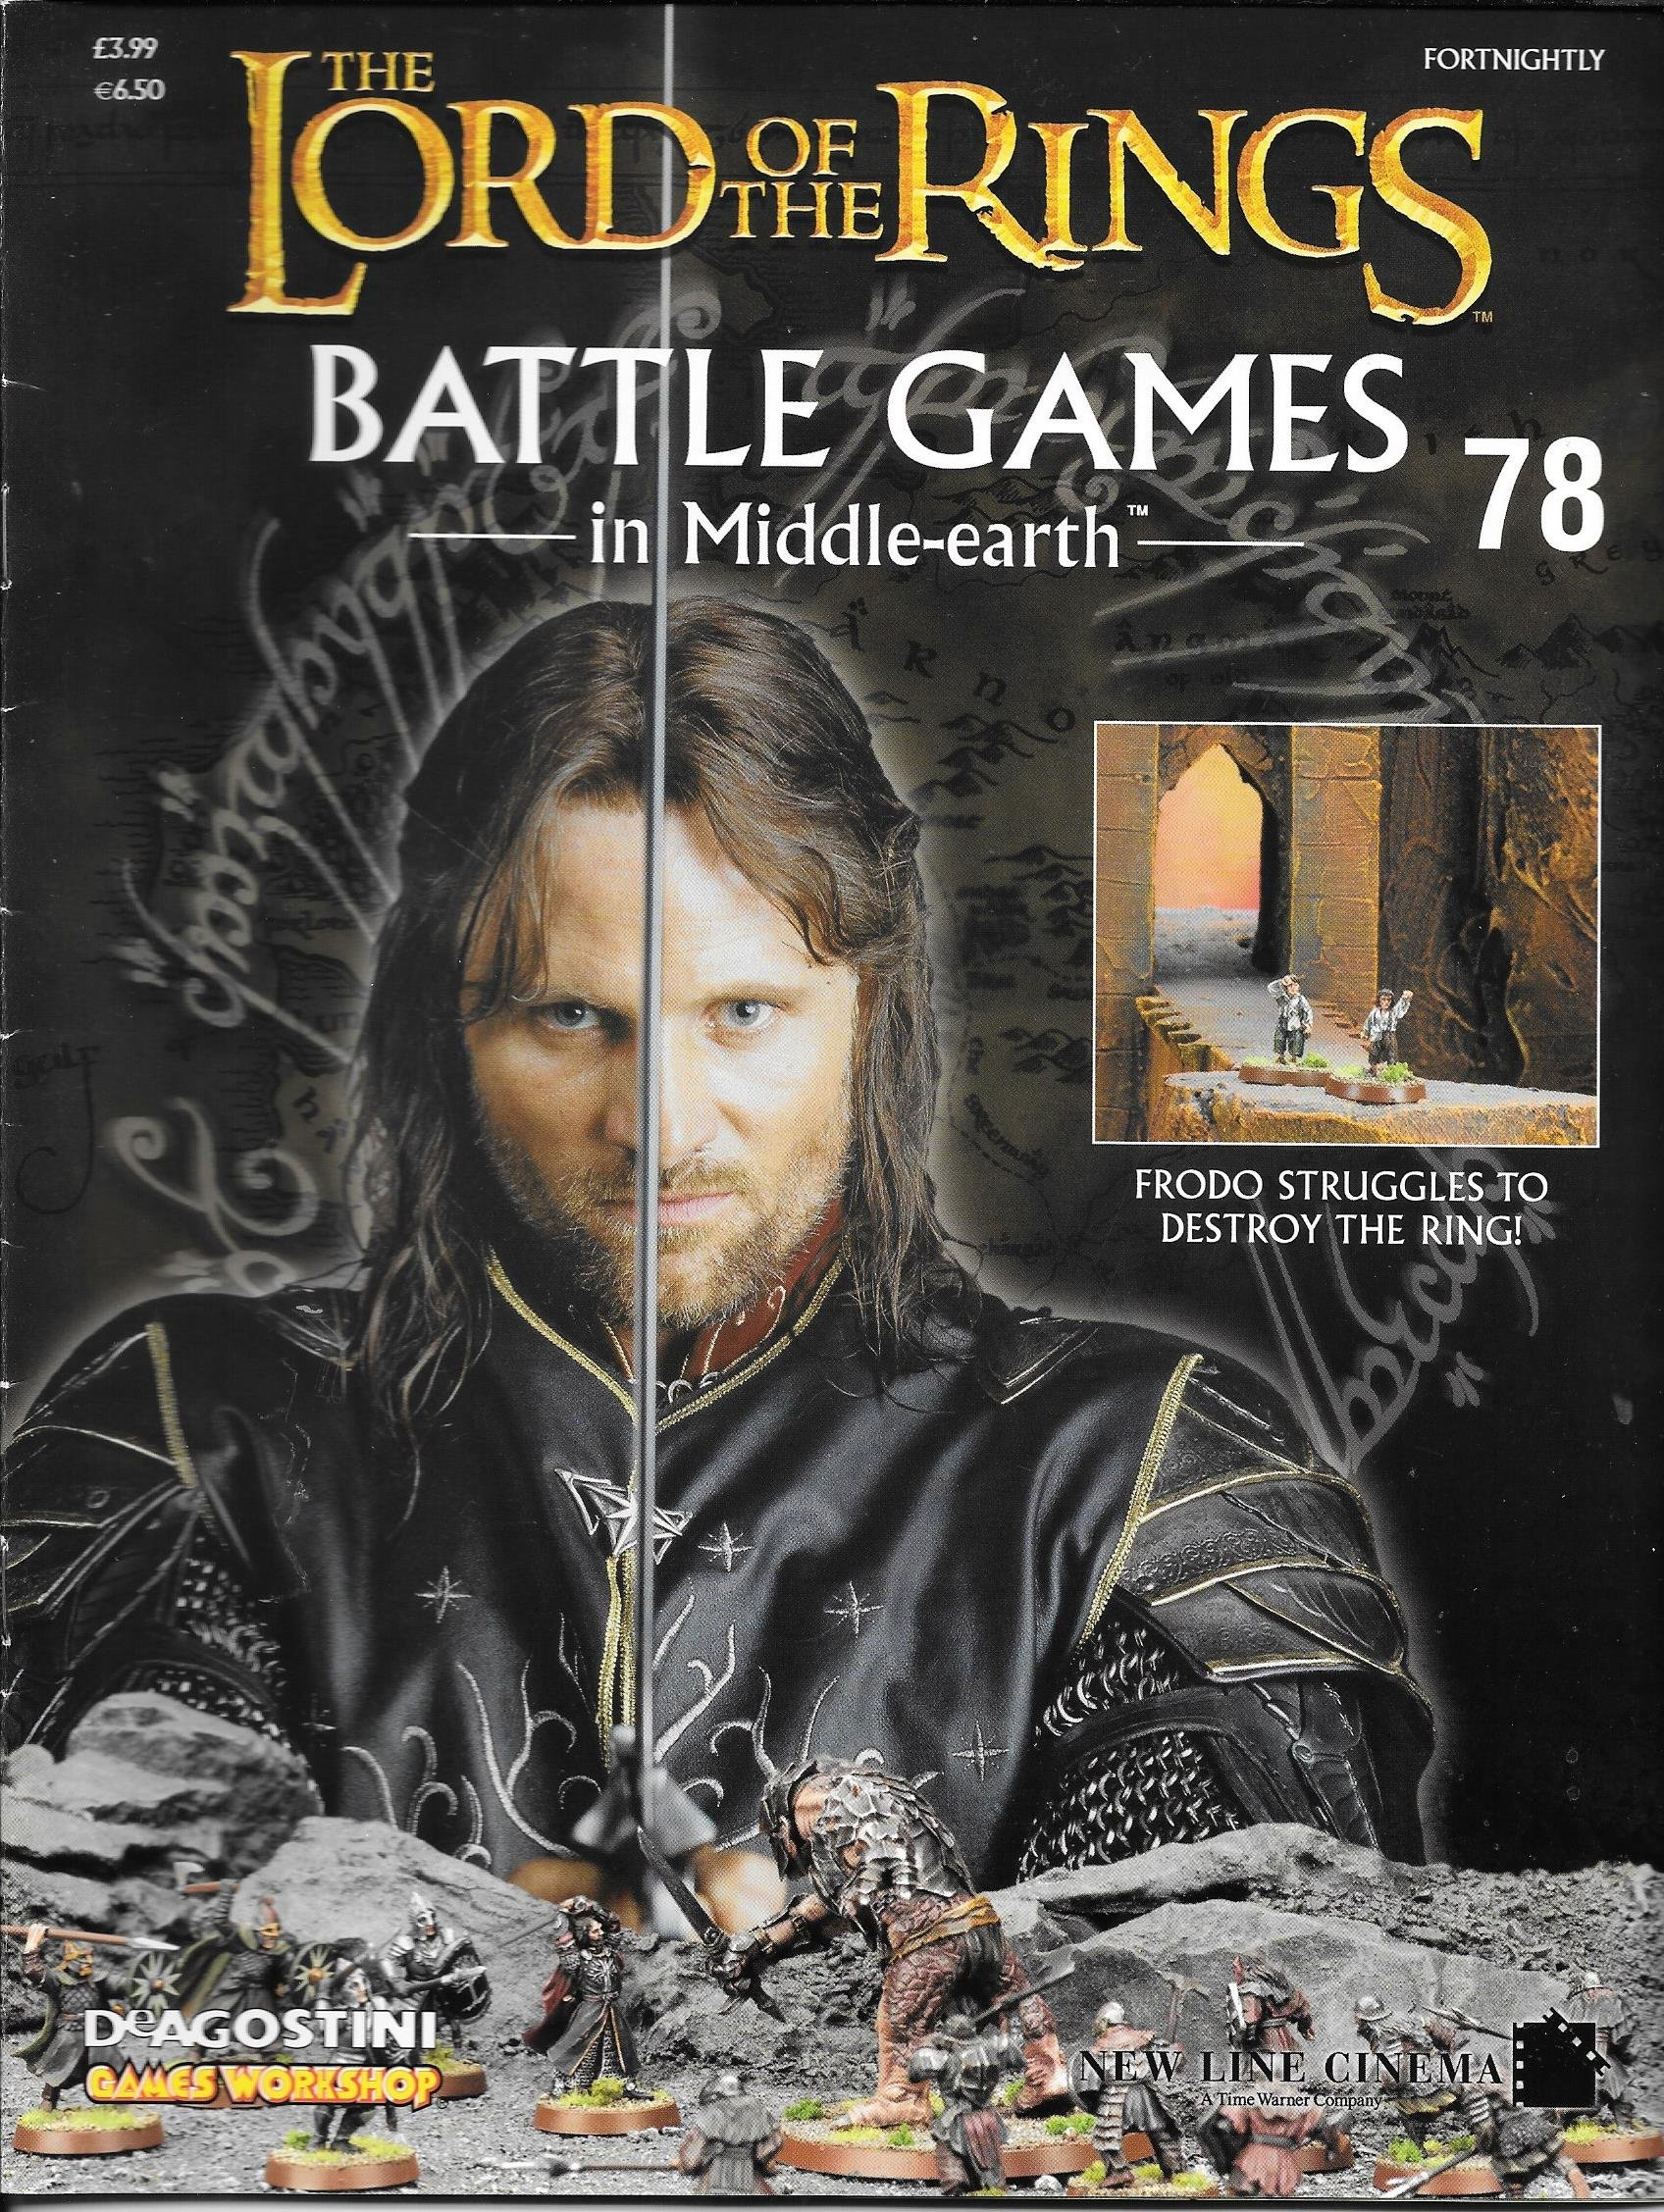 Battle Games in Middle-Earth Magazine Games Workshop Deagostini